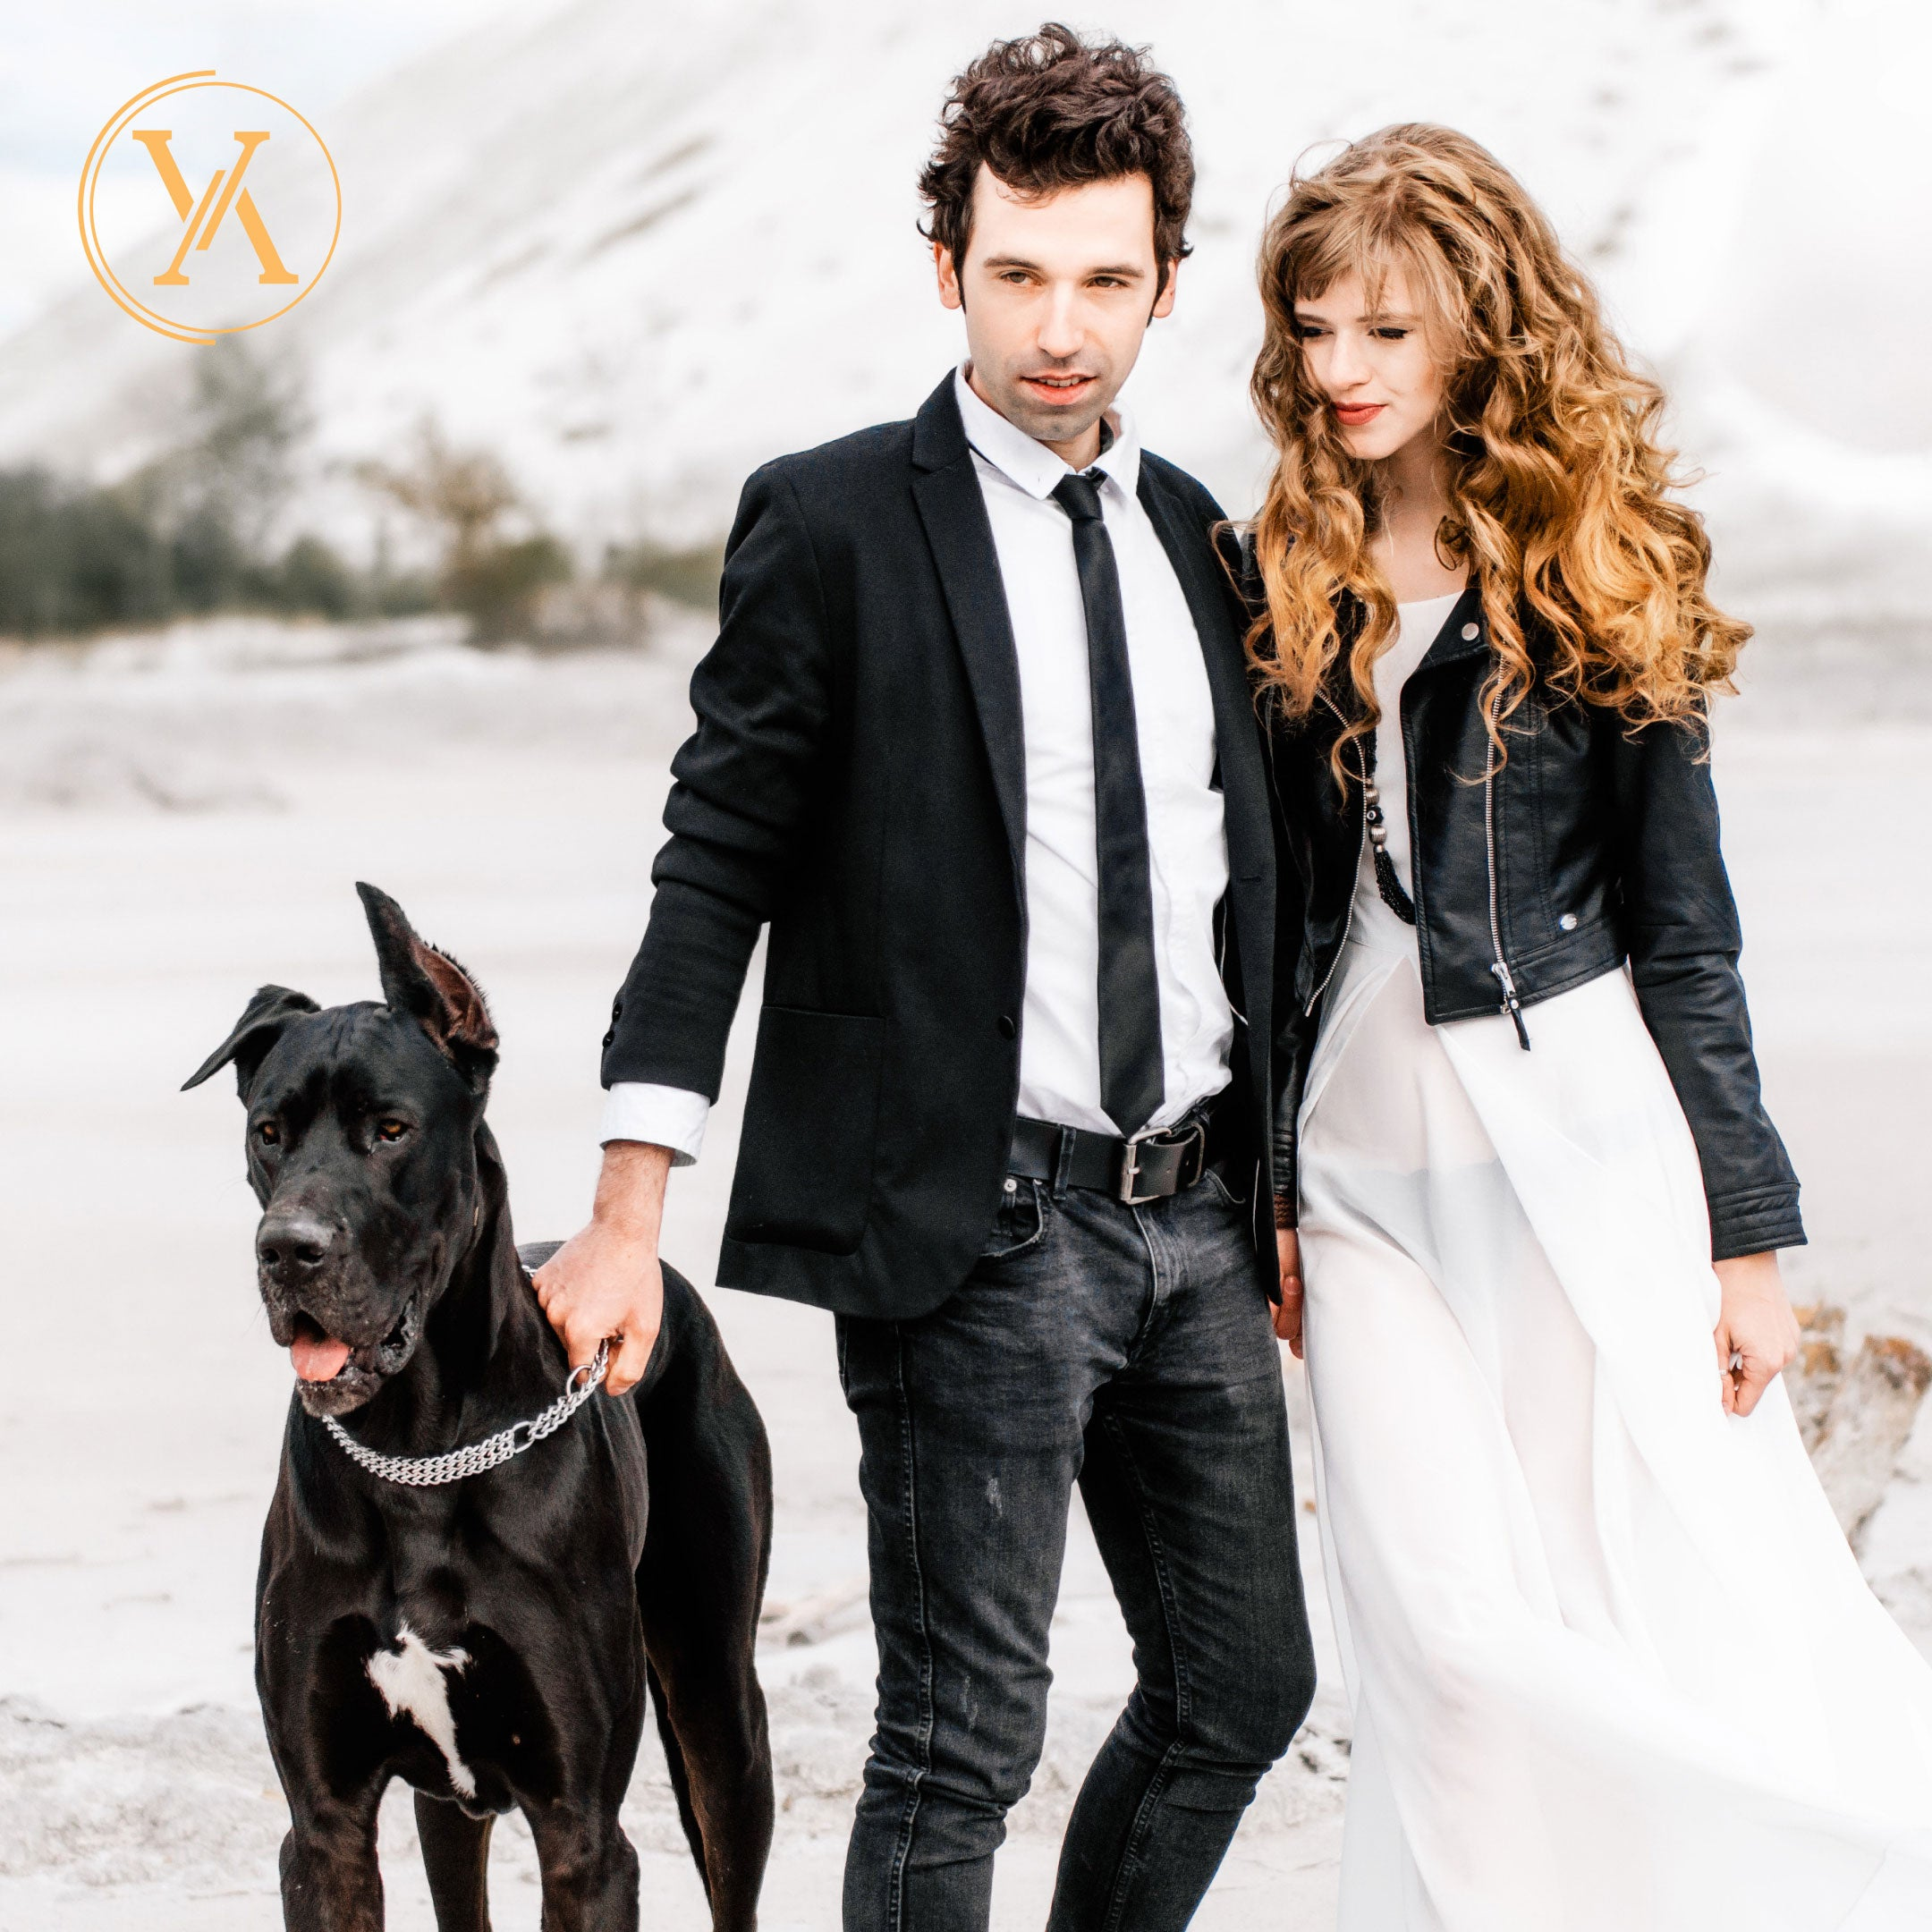 Business man and career woman walking a large black dog outside